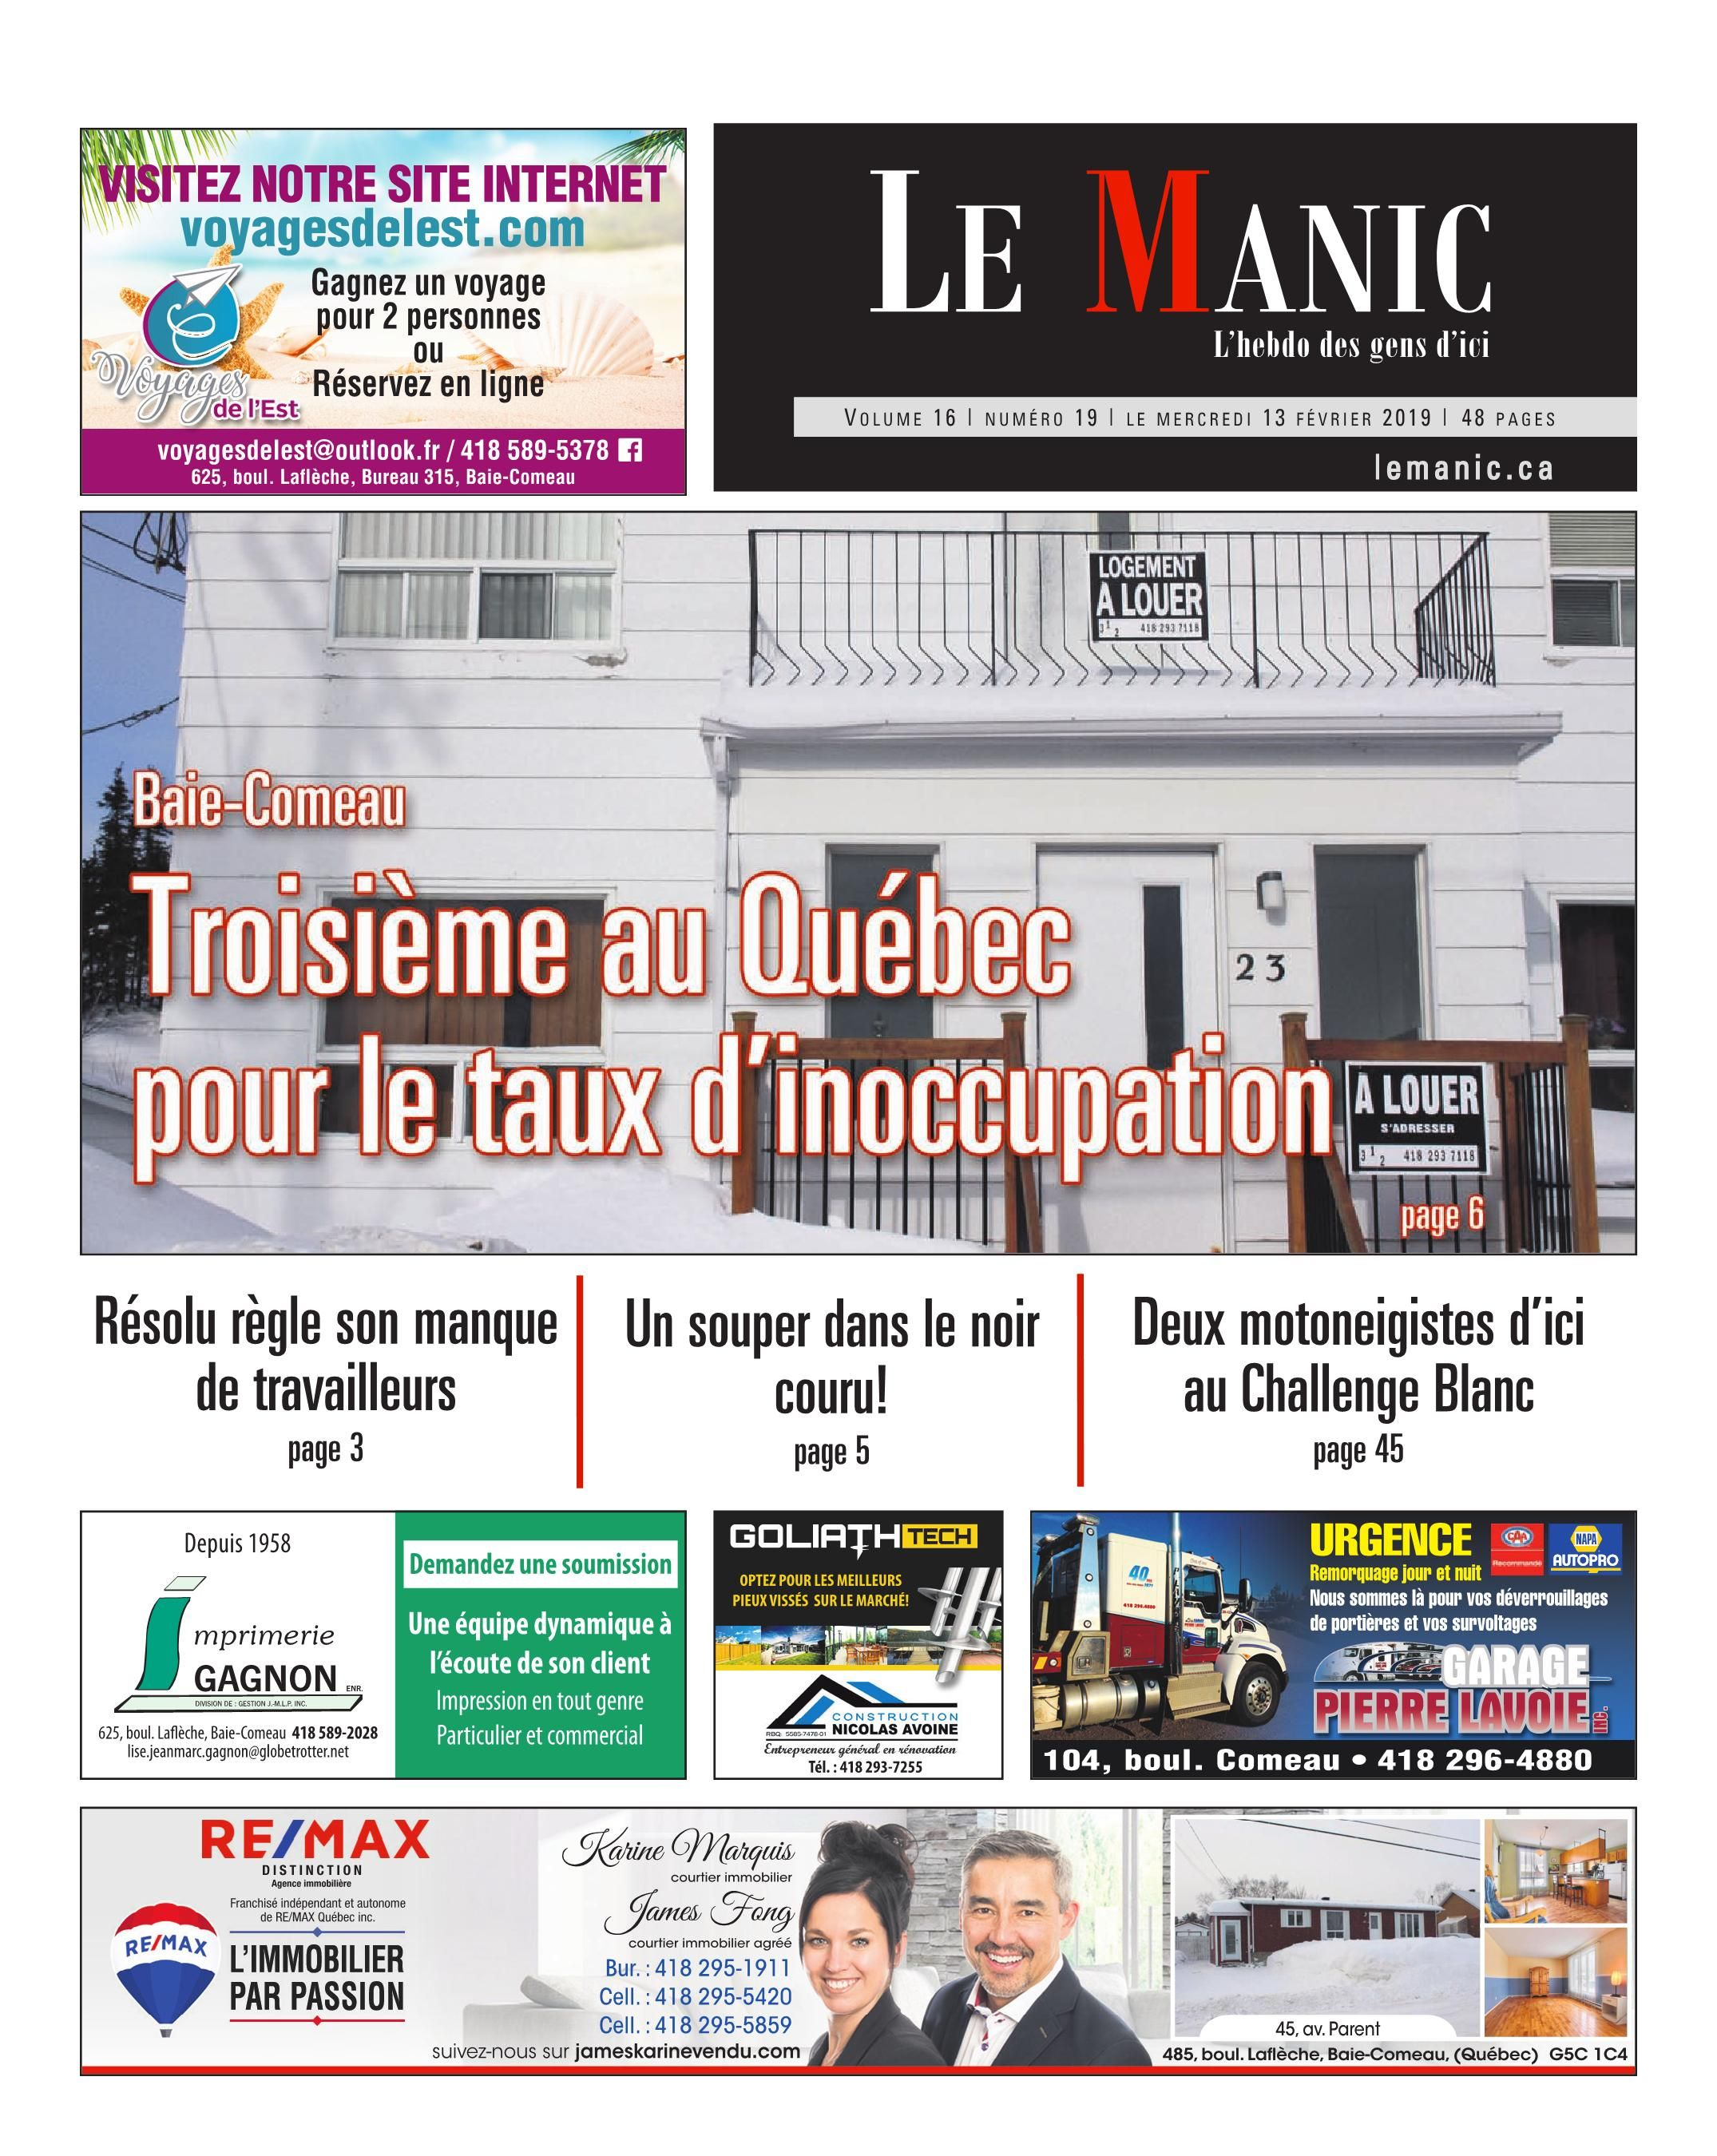 Meubles Accent Dolbeau-mistassini Le Manic 13 Février 2019 Pages 1 48 Text Version Fliphtml5